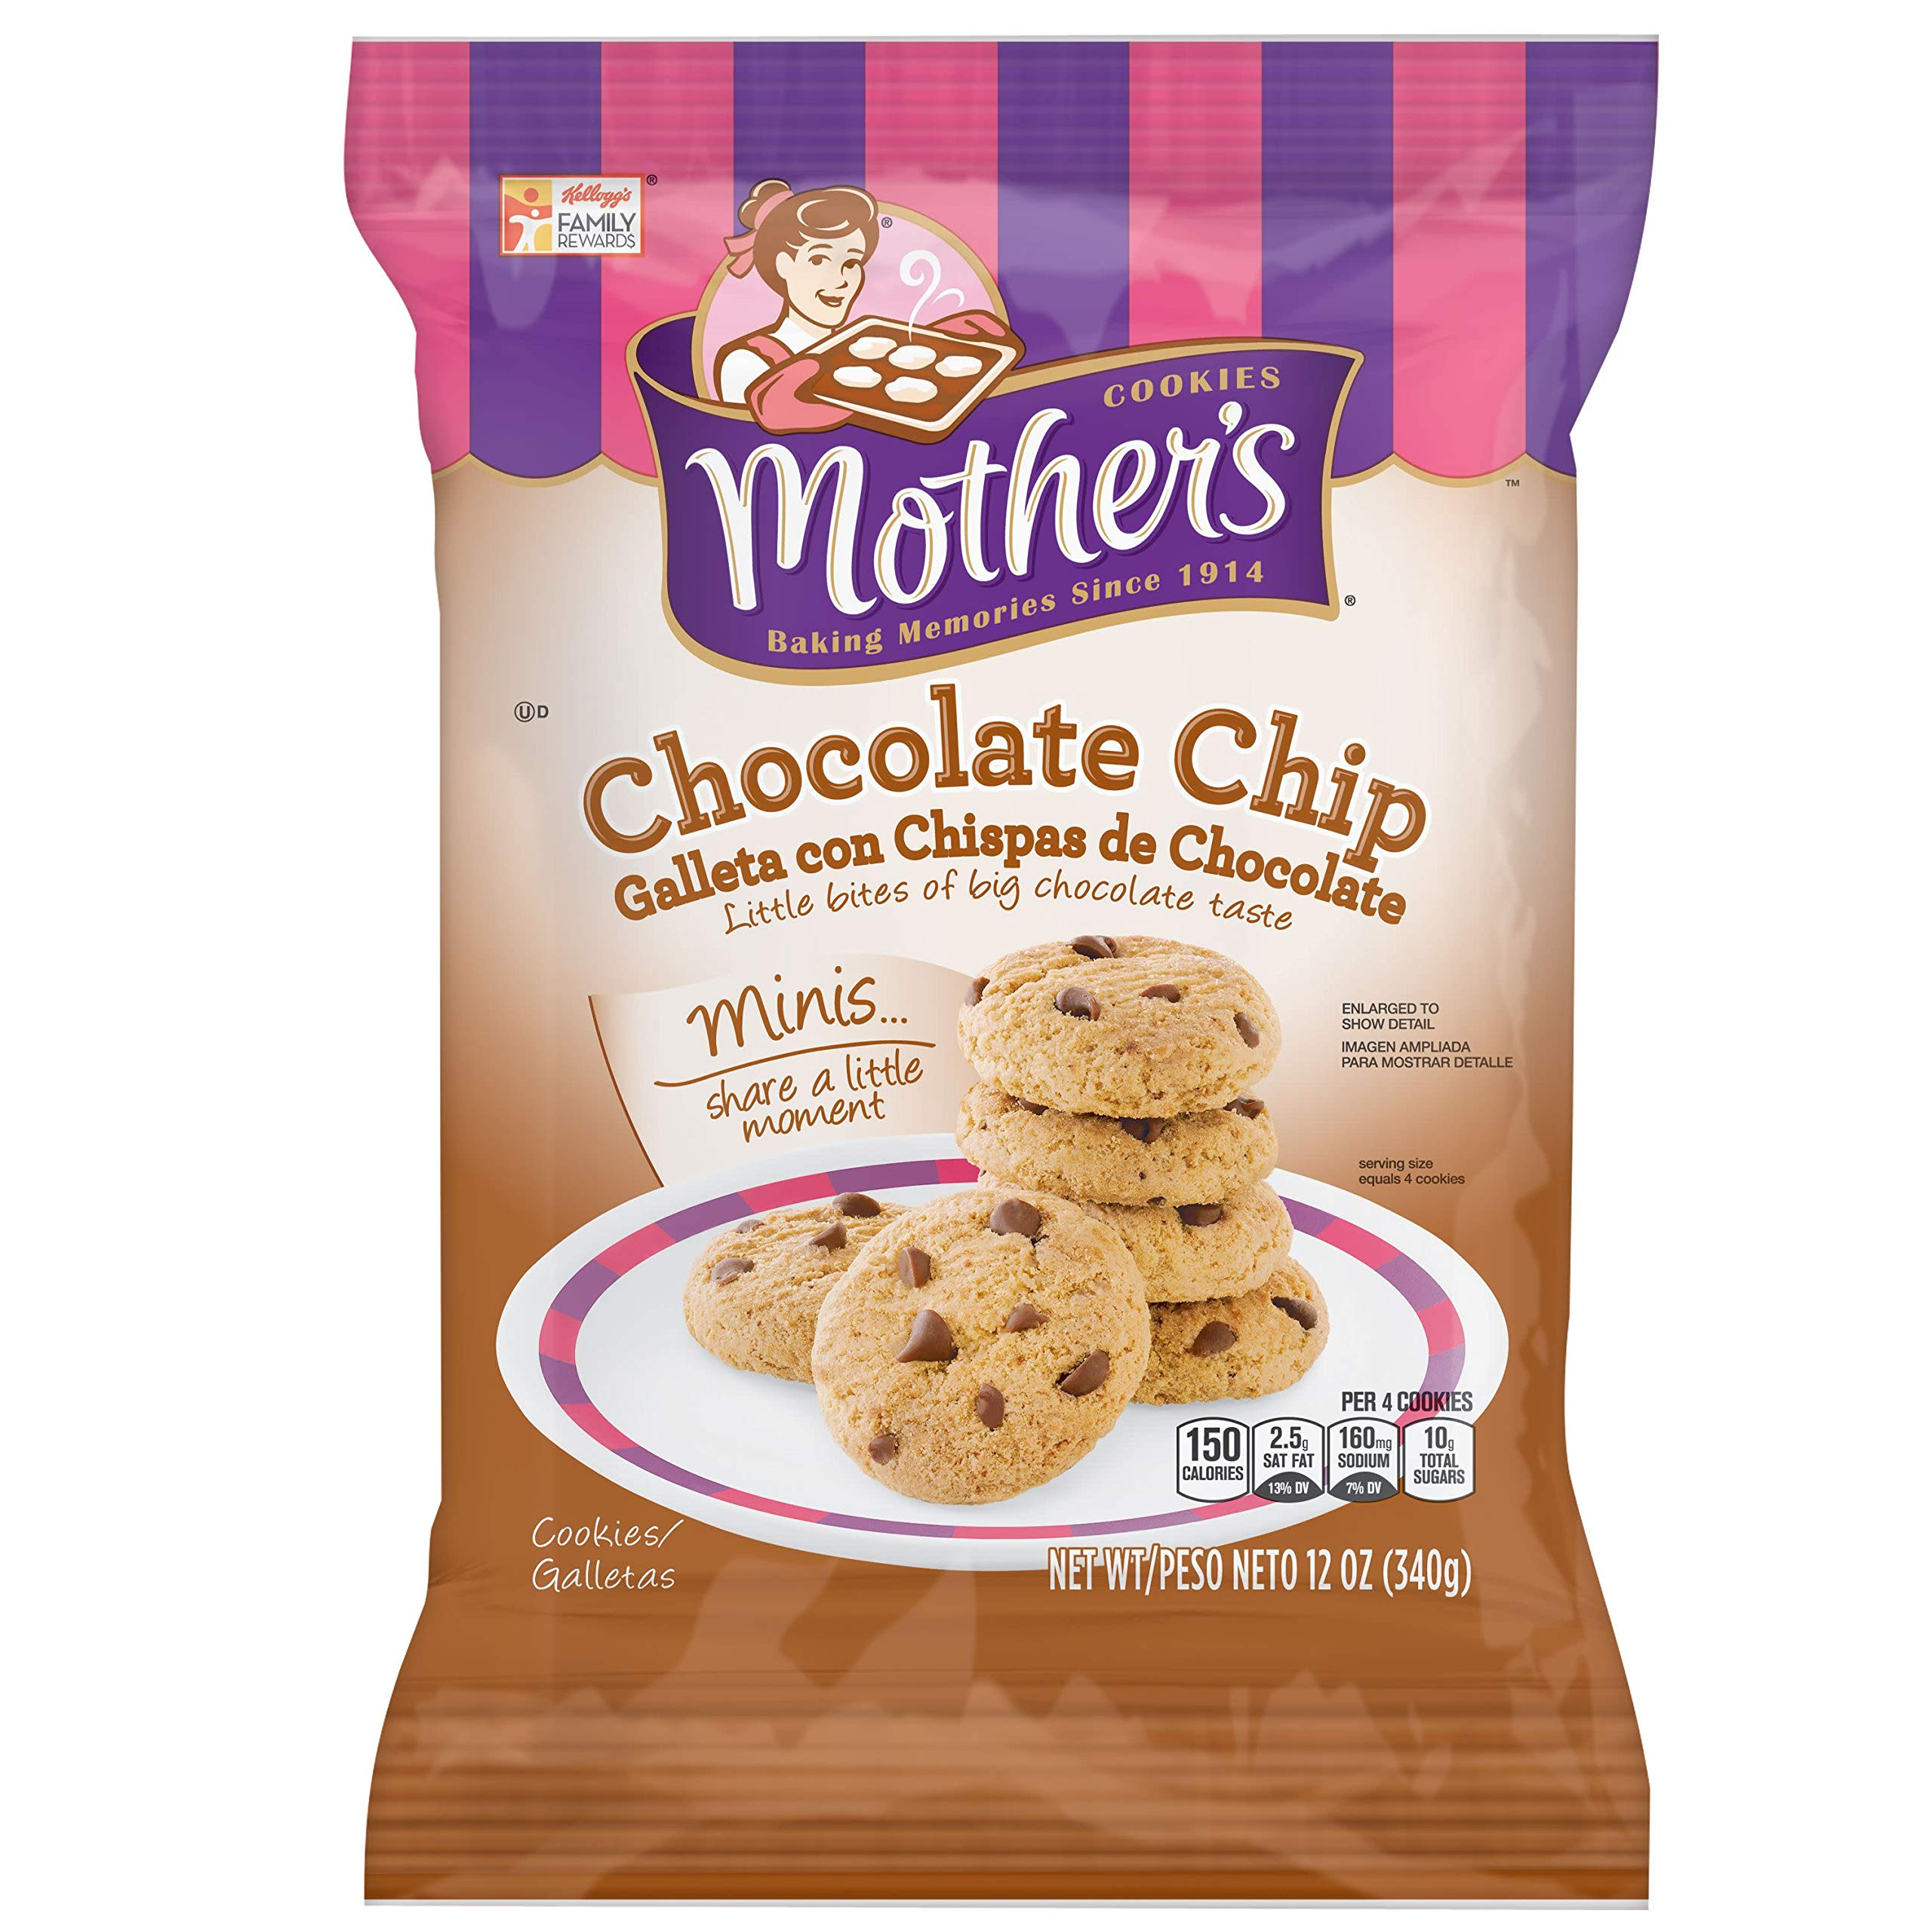 Mother's Cookies, Minis Chocolate Chip, 12 oz Bag